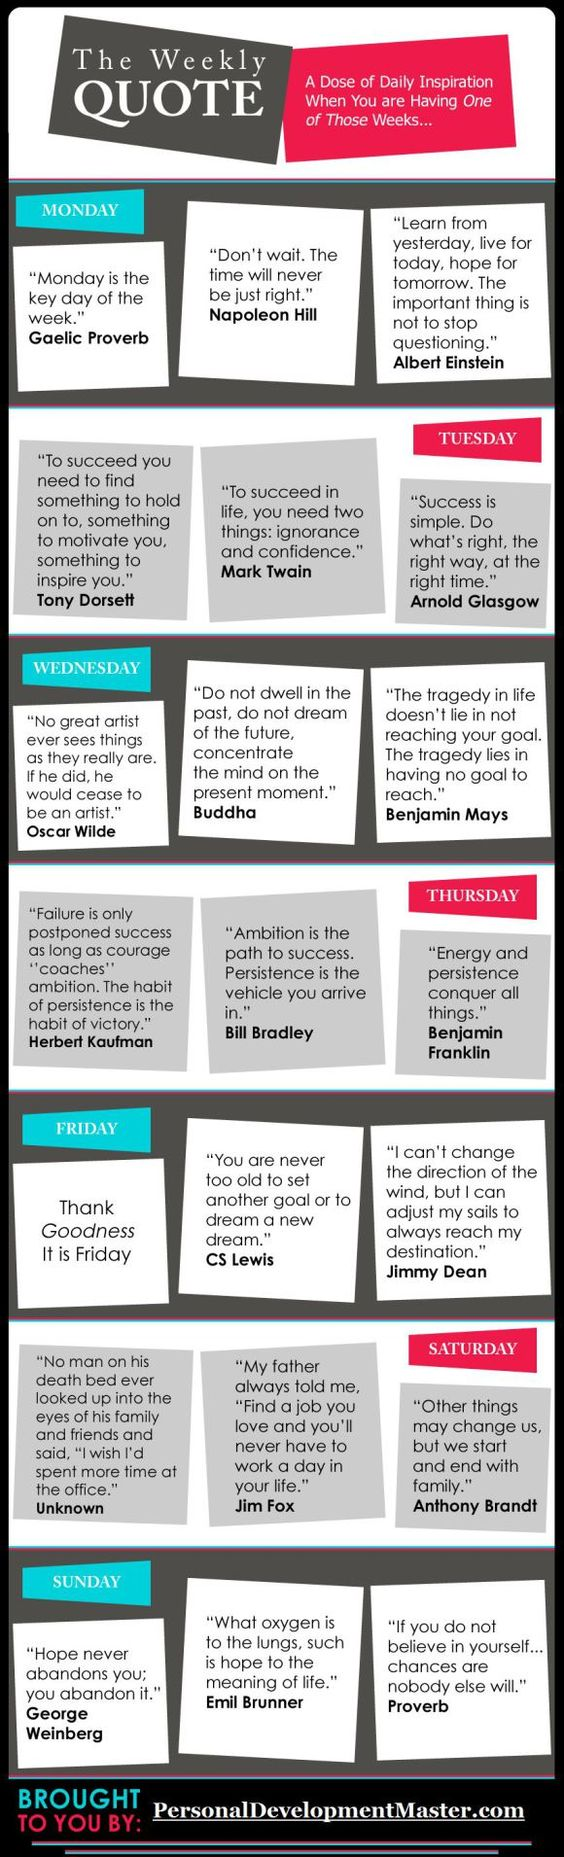 Daily Quotes for Creative Inspiration